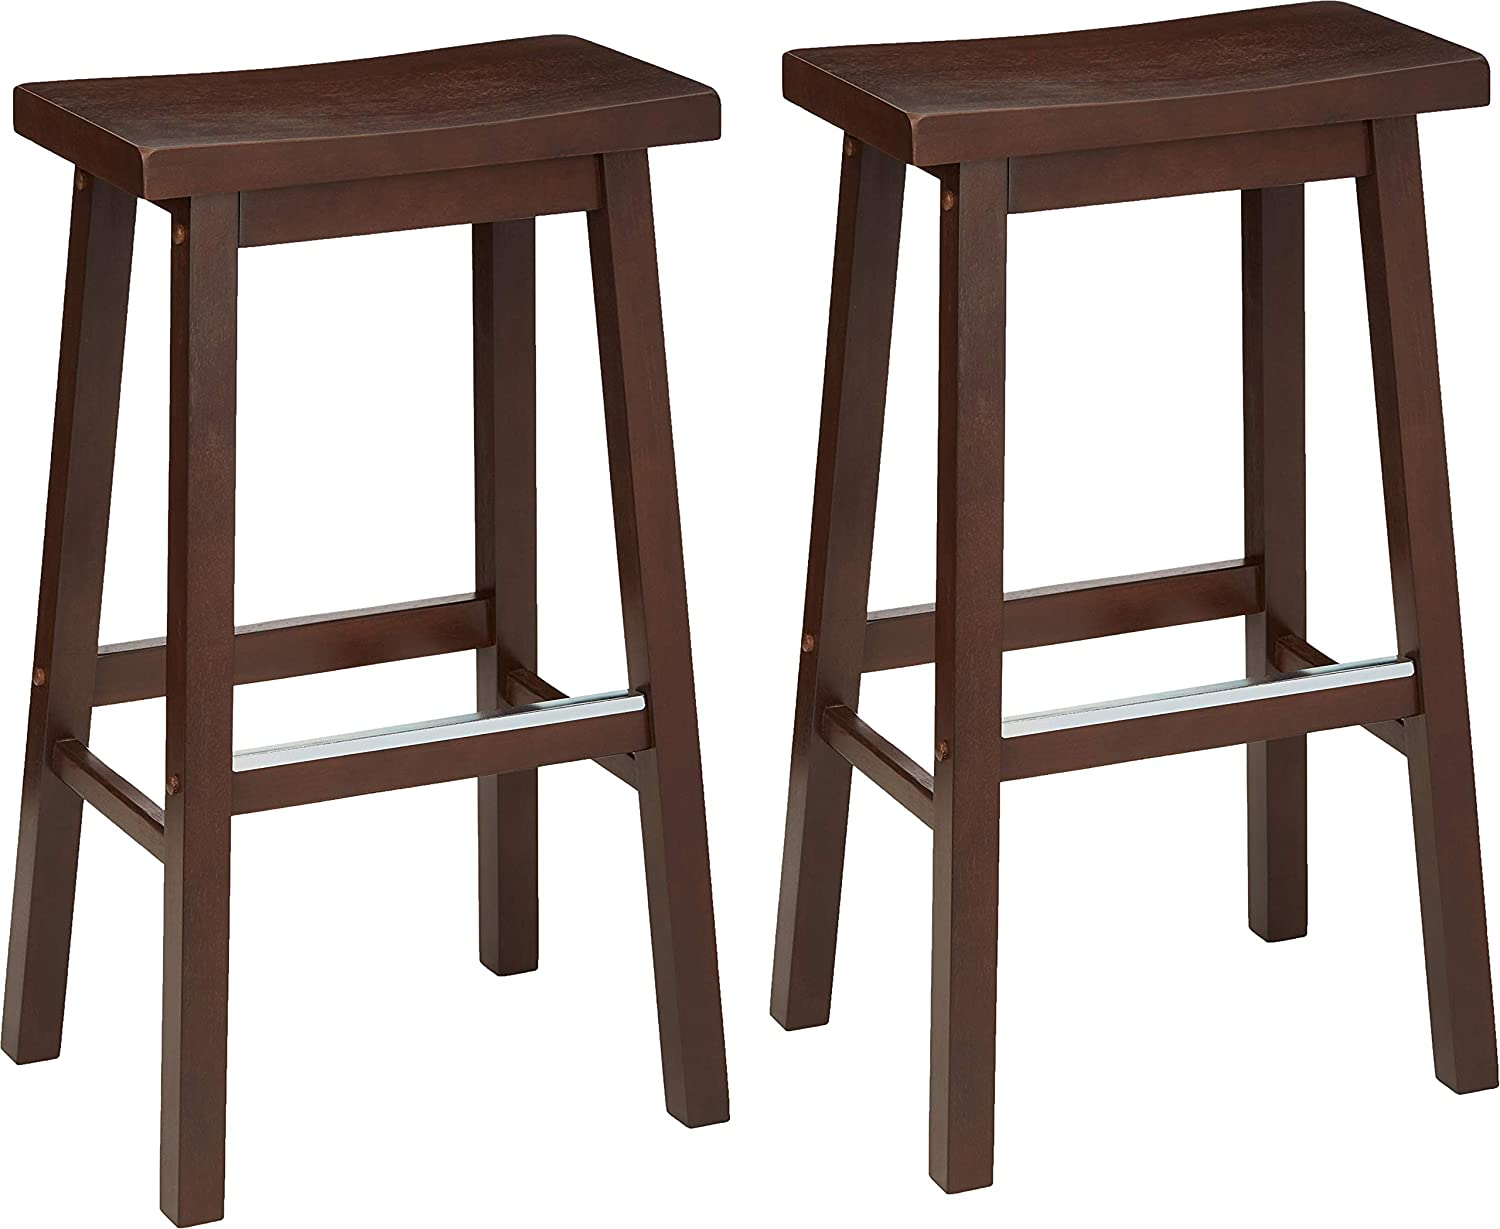 best set of 2 bar stool, buy 2 backless bar stool online